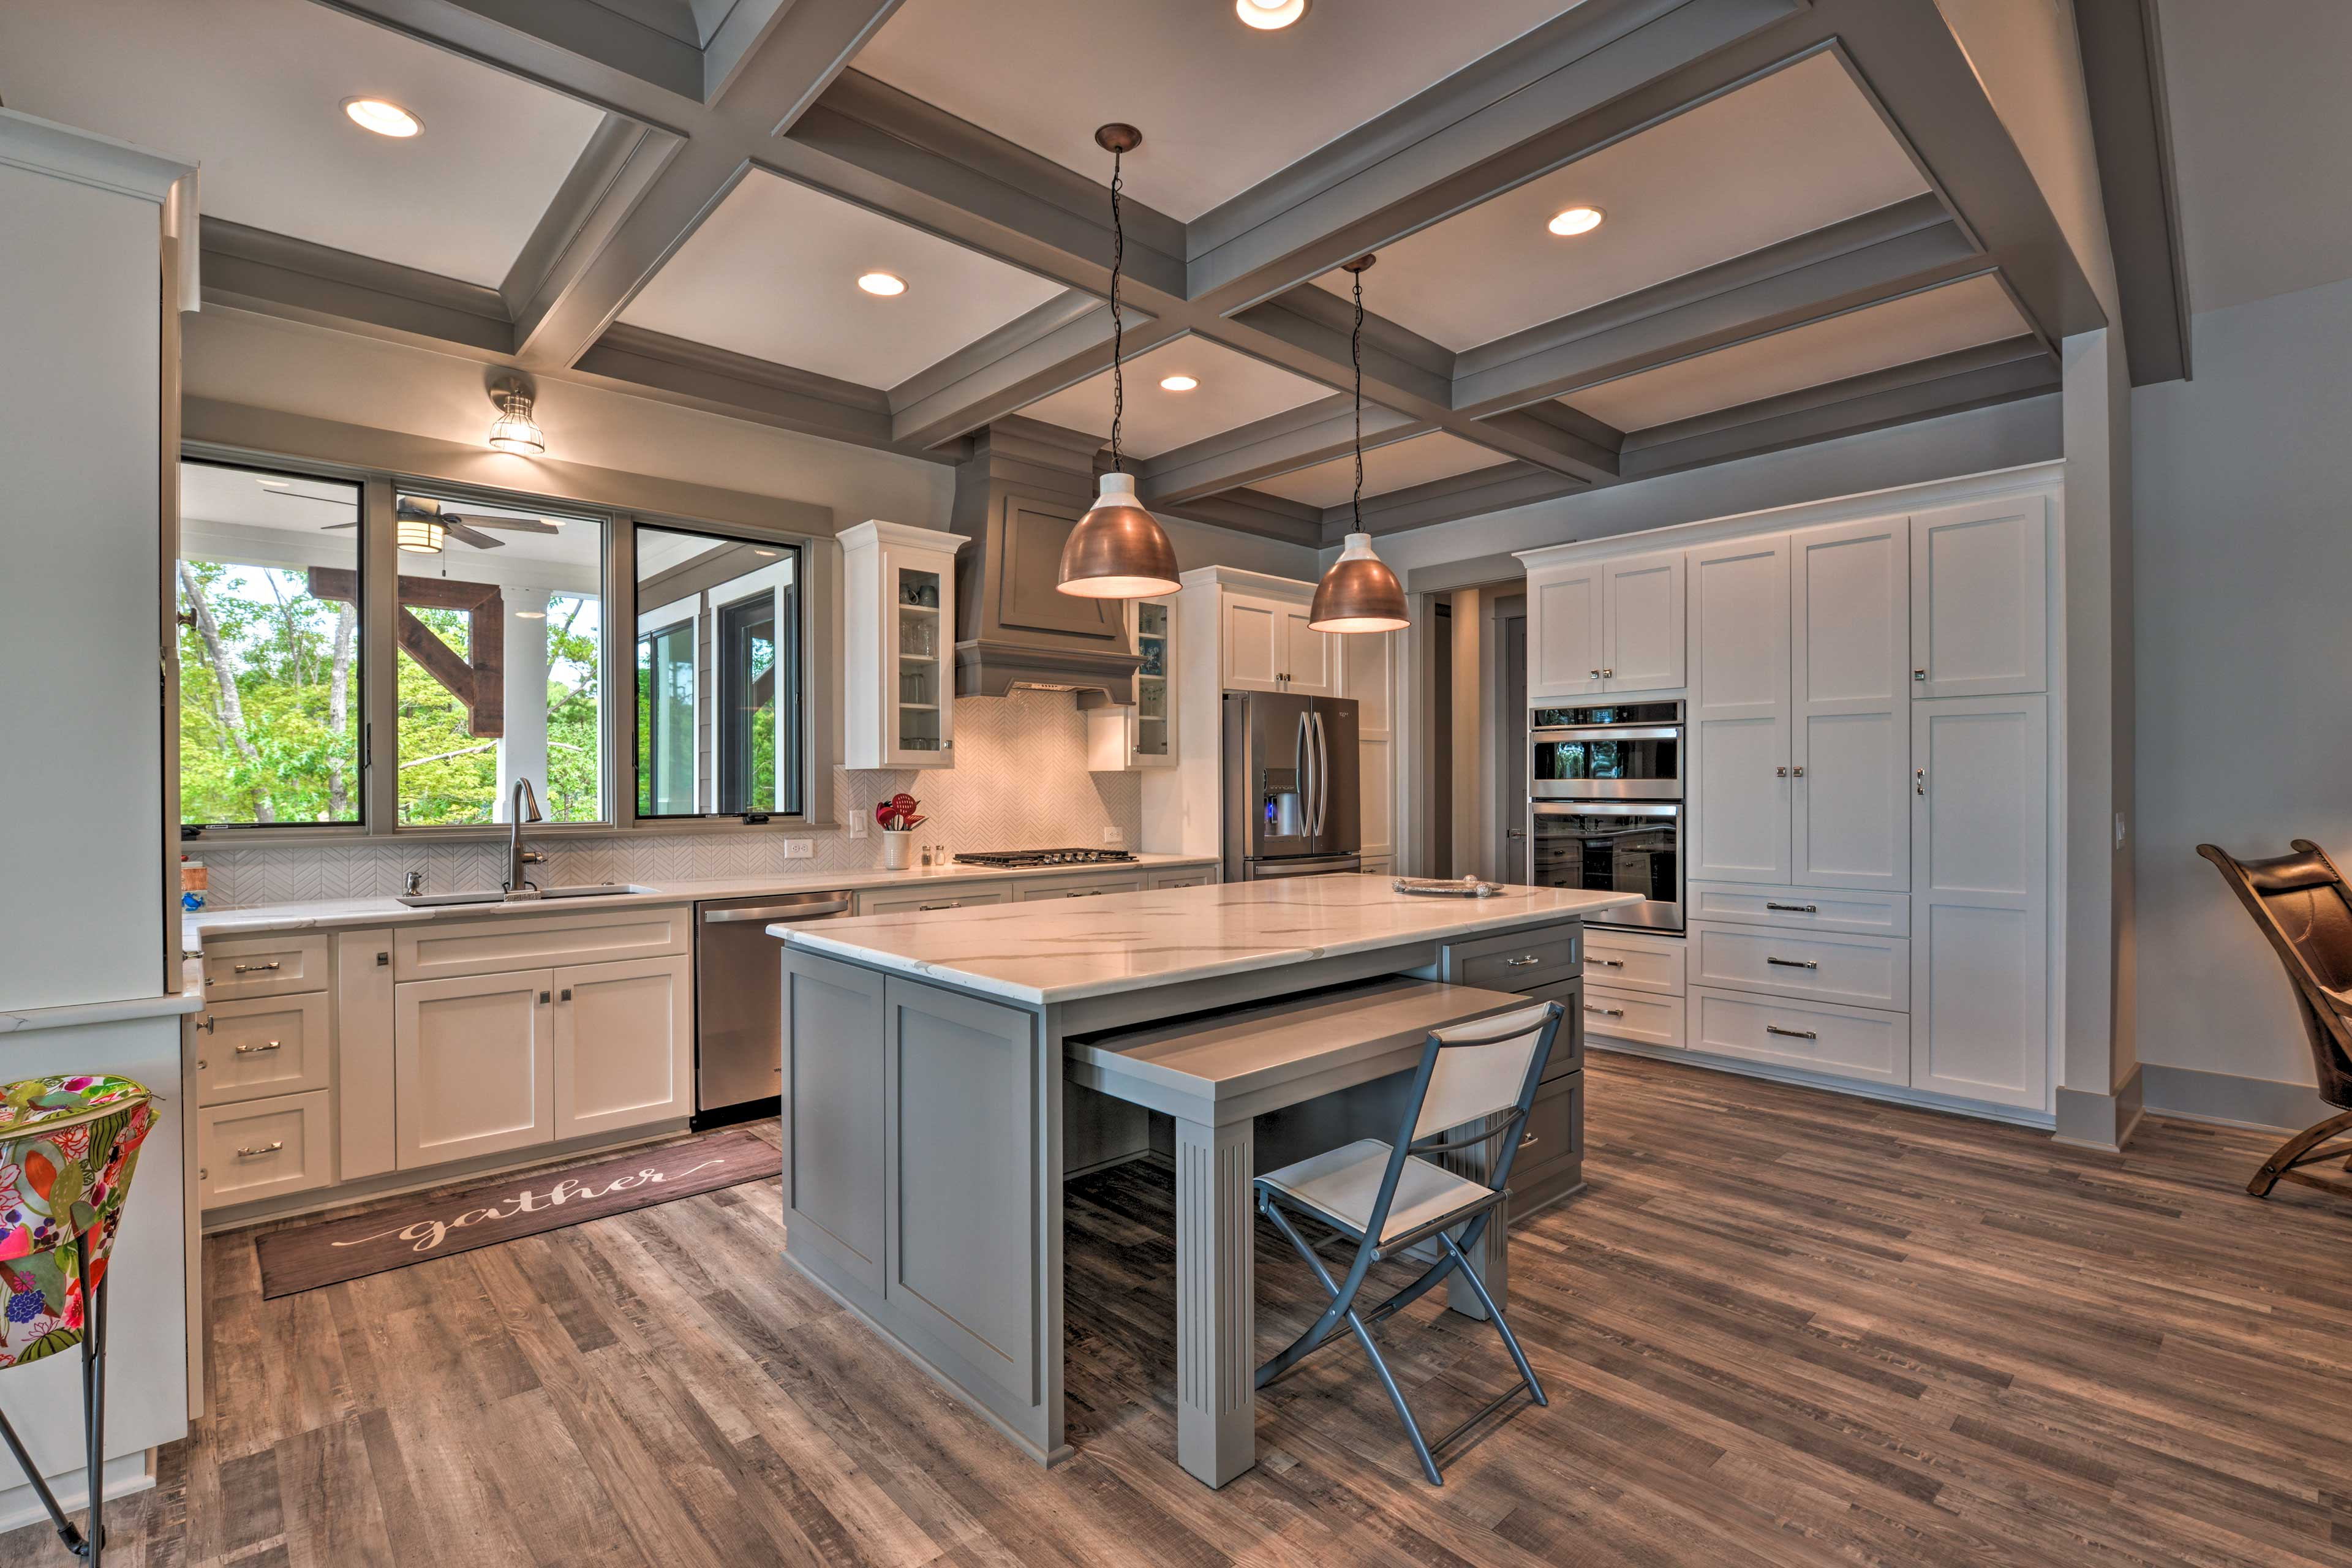 The gourmet kitchen features stainless steel appliances and a large island.